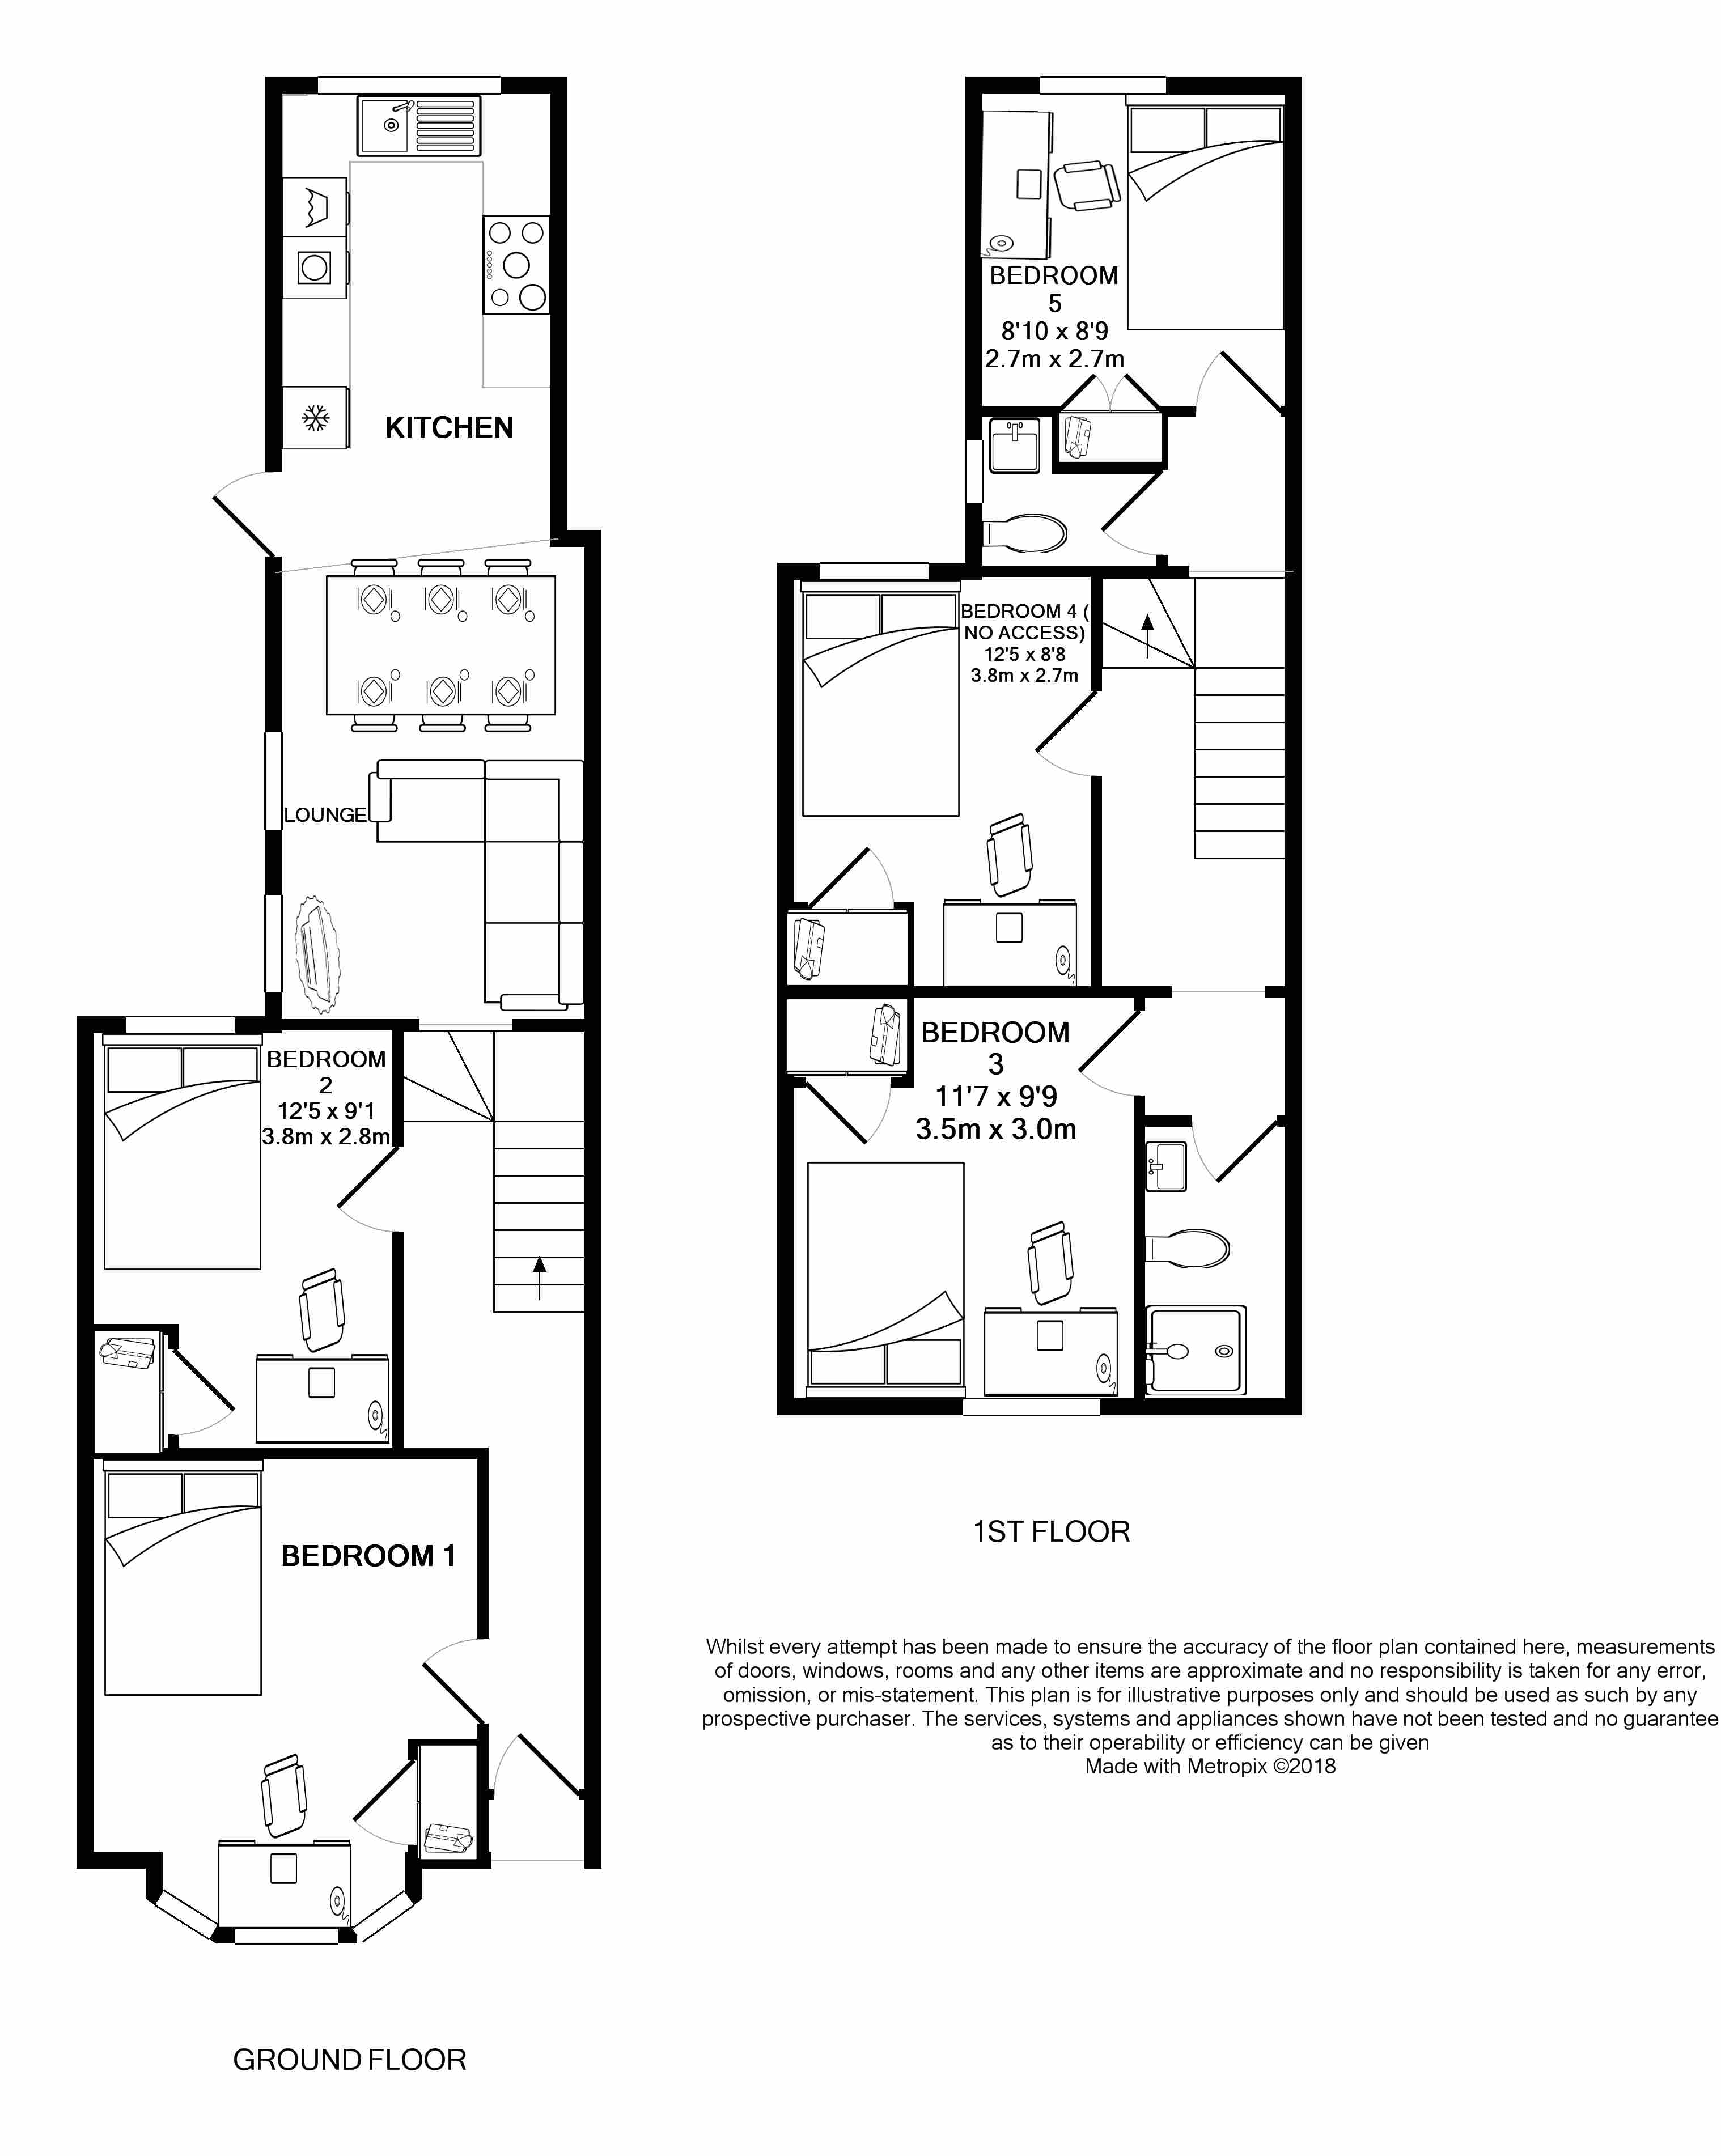 42 Hudson Road - floorplans